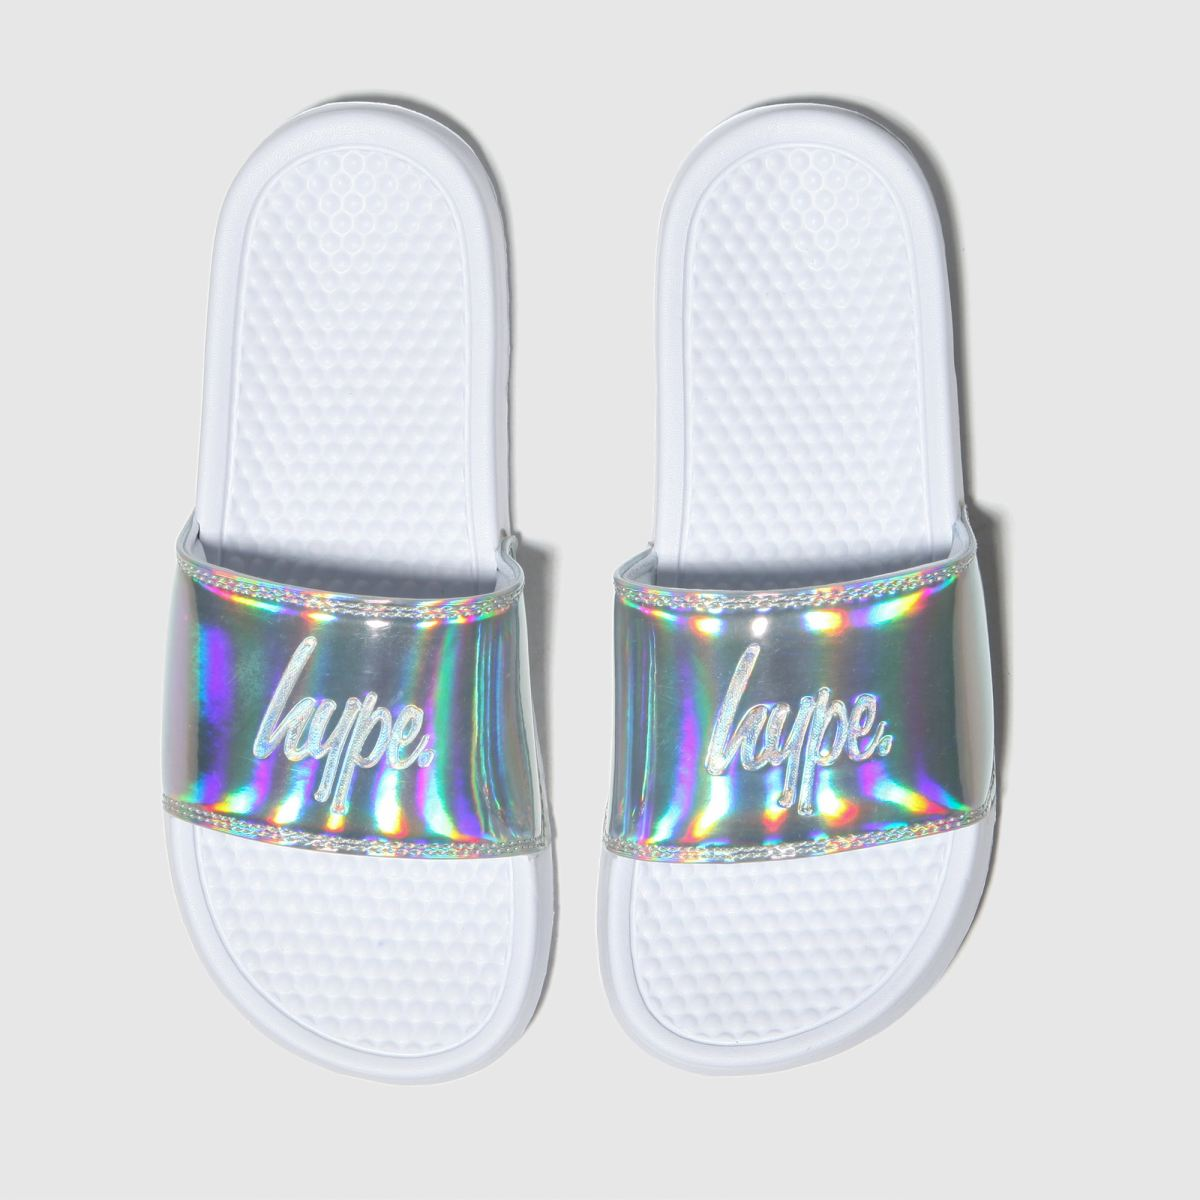 Hype White & Silver Holographic Sliders Sandals Youth